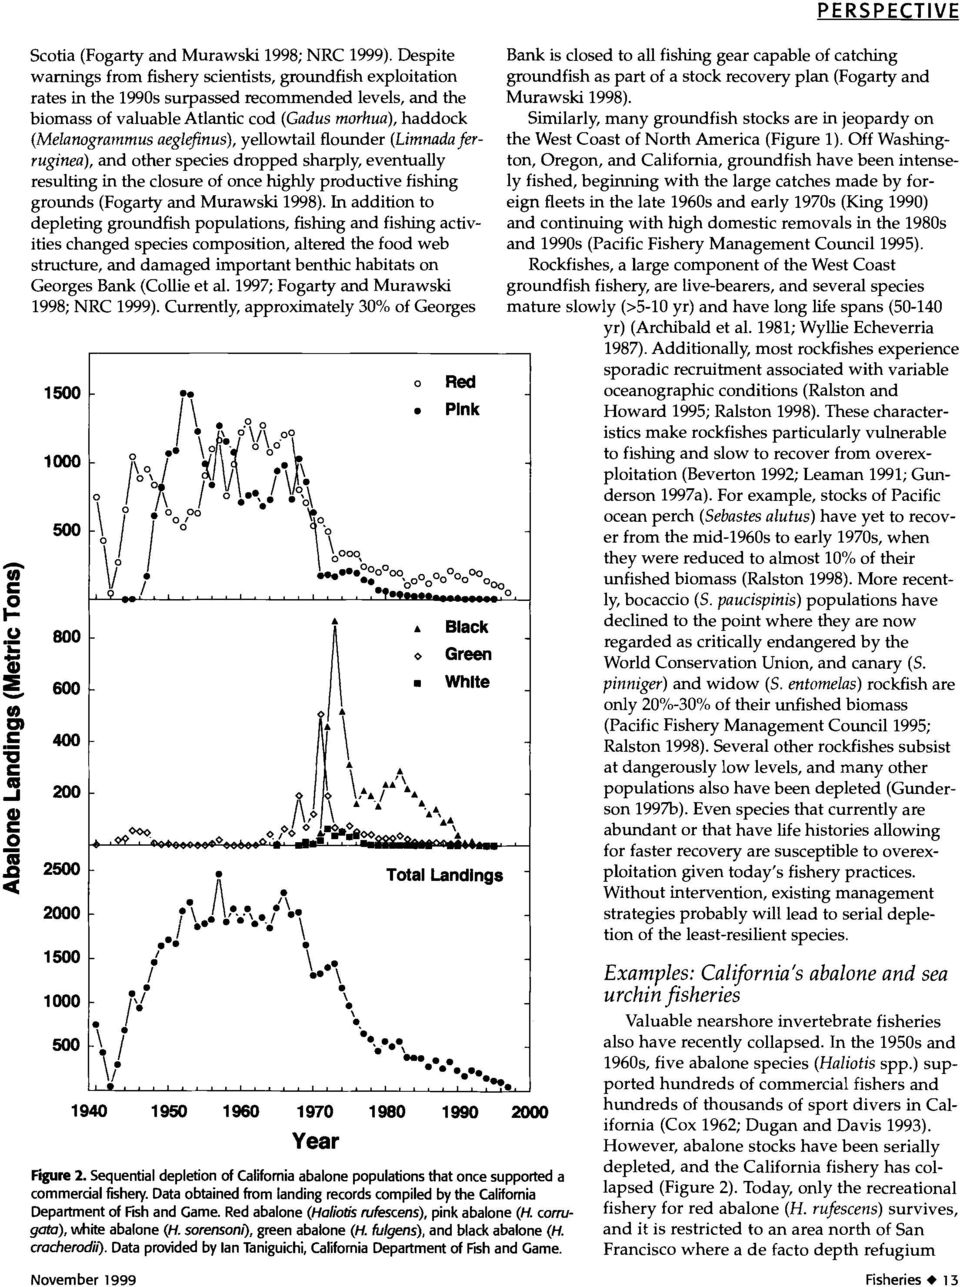 aeglefinus), yellowtail flounder (Limnadaferruginea), and other species dropped sharply, eventually resulting in the closure of once highly productive fishing grounds (Fogarty and Murawski 1998).